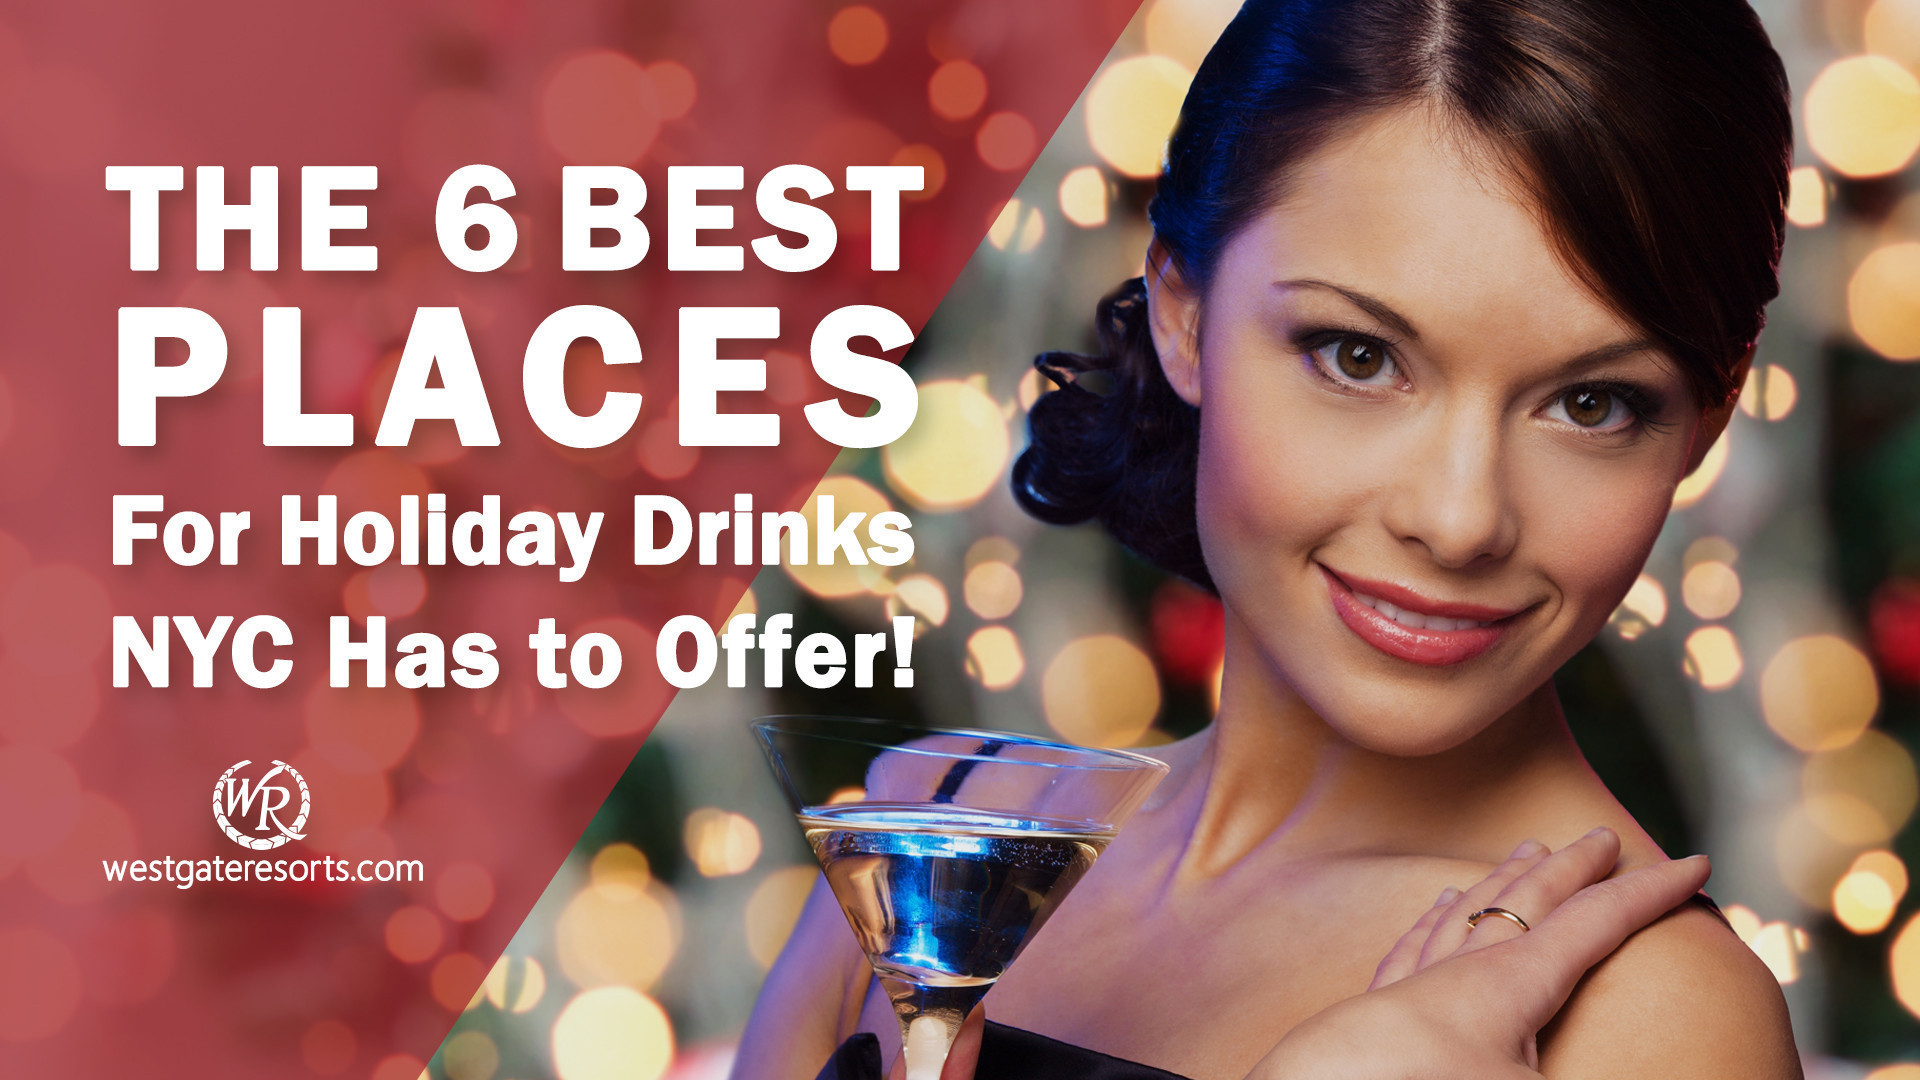 The 6 Best Places for Holiday Drinks NYC Has to Offer! | Holiday Cocktail Lounges in Midtown East Manhattan